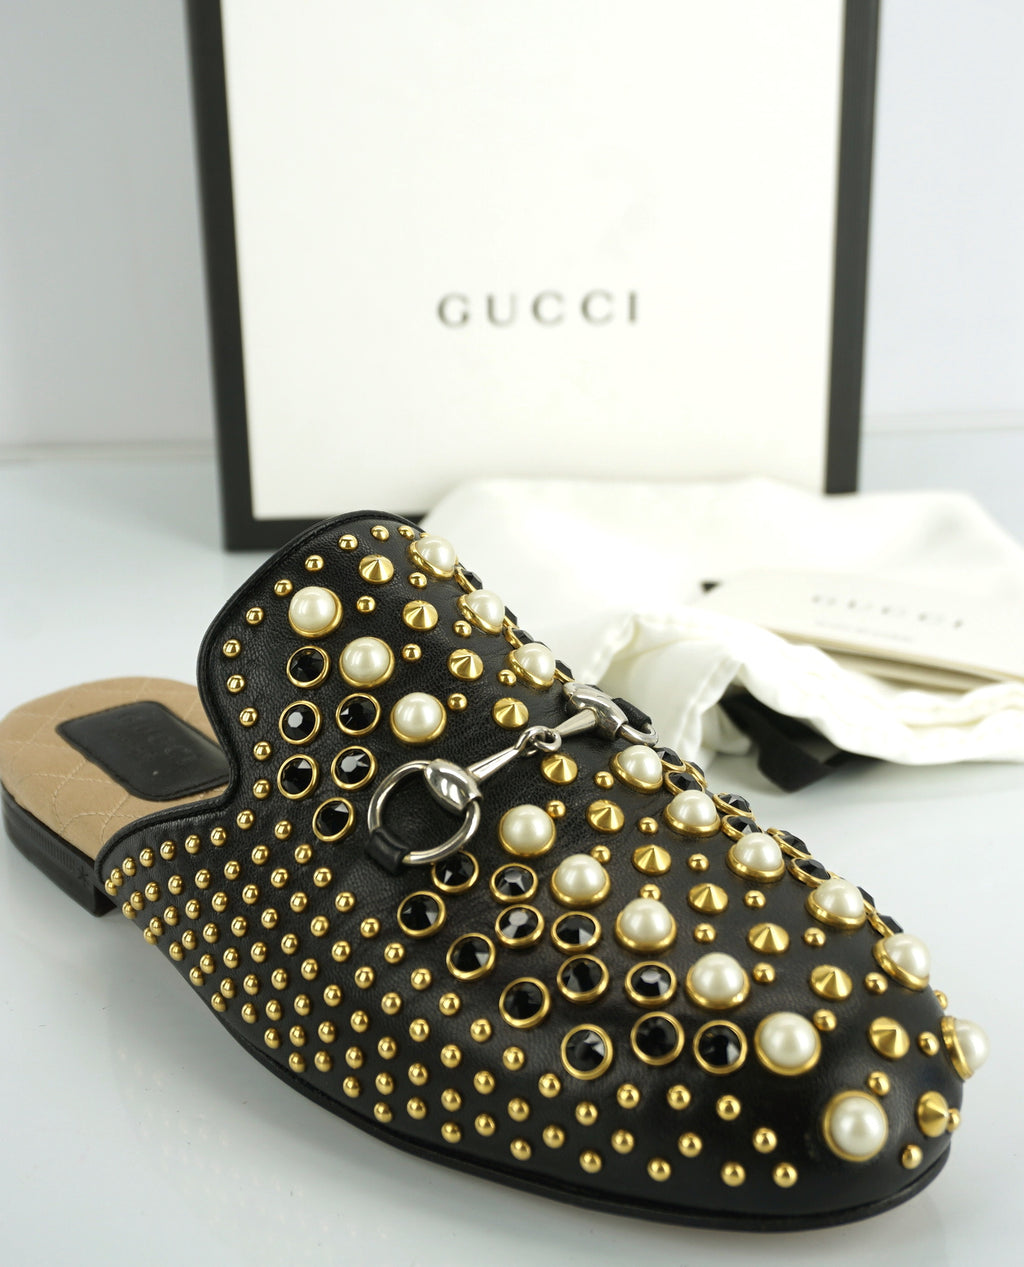 Gucci Womens Princetown Pearl Mule Flats Black Leather Size 35